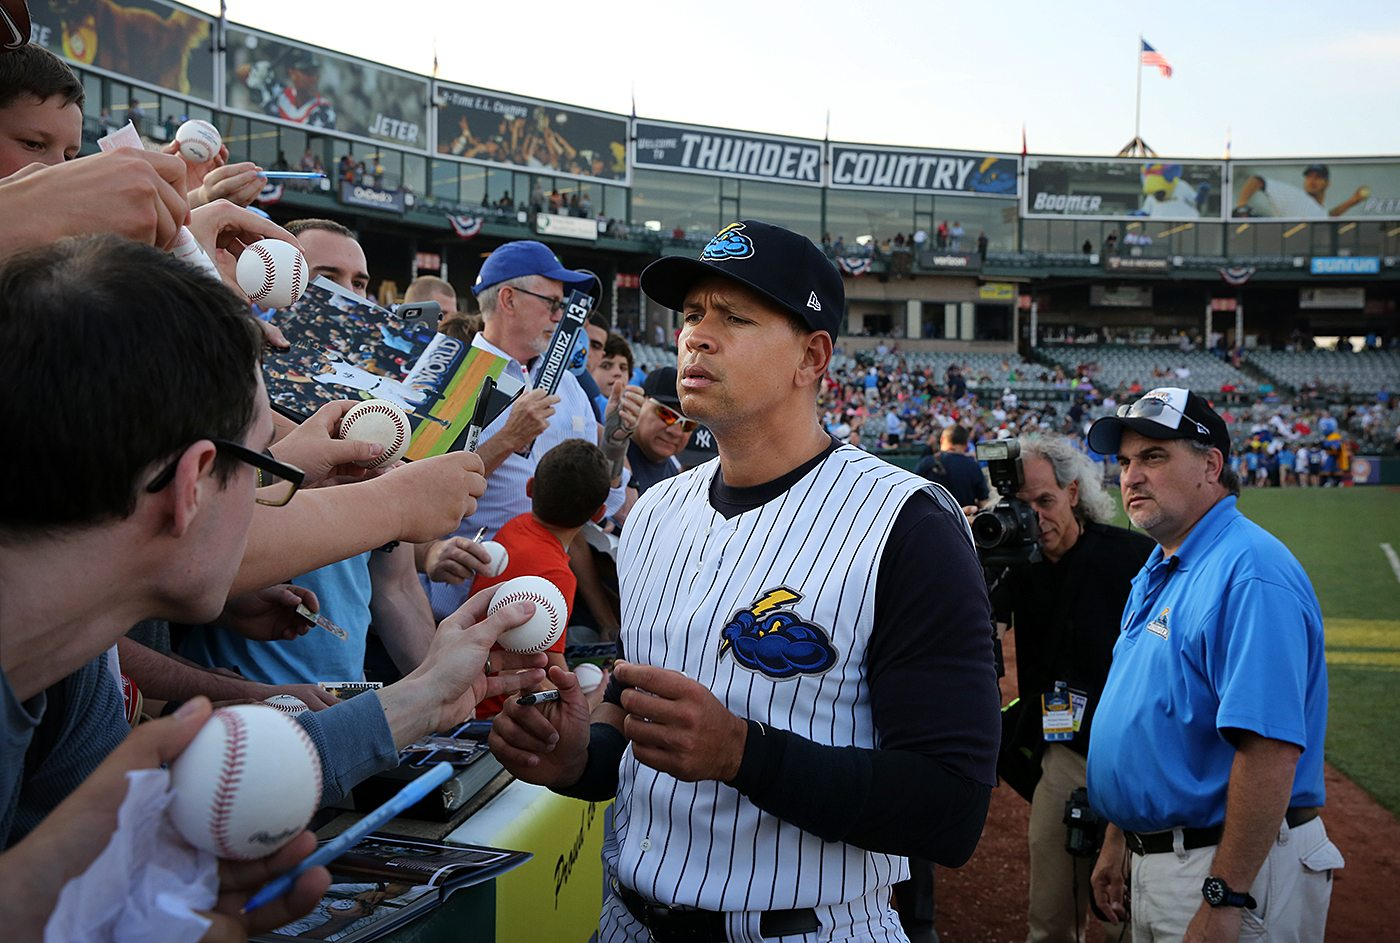 New York Yankees slugger Alex Rodriguez signs autographs for fans at ARM & HAMMER Park in Trenton on Wednesday, May 25, 2016 before a game against the New Hampshire Fisher Cats. Rodriguez joined the Double A Yankee farm team for a second day as part of a rehab assignment. Photo by Martin Griff